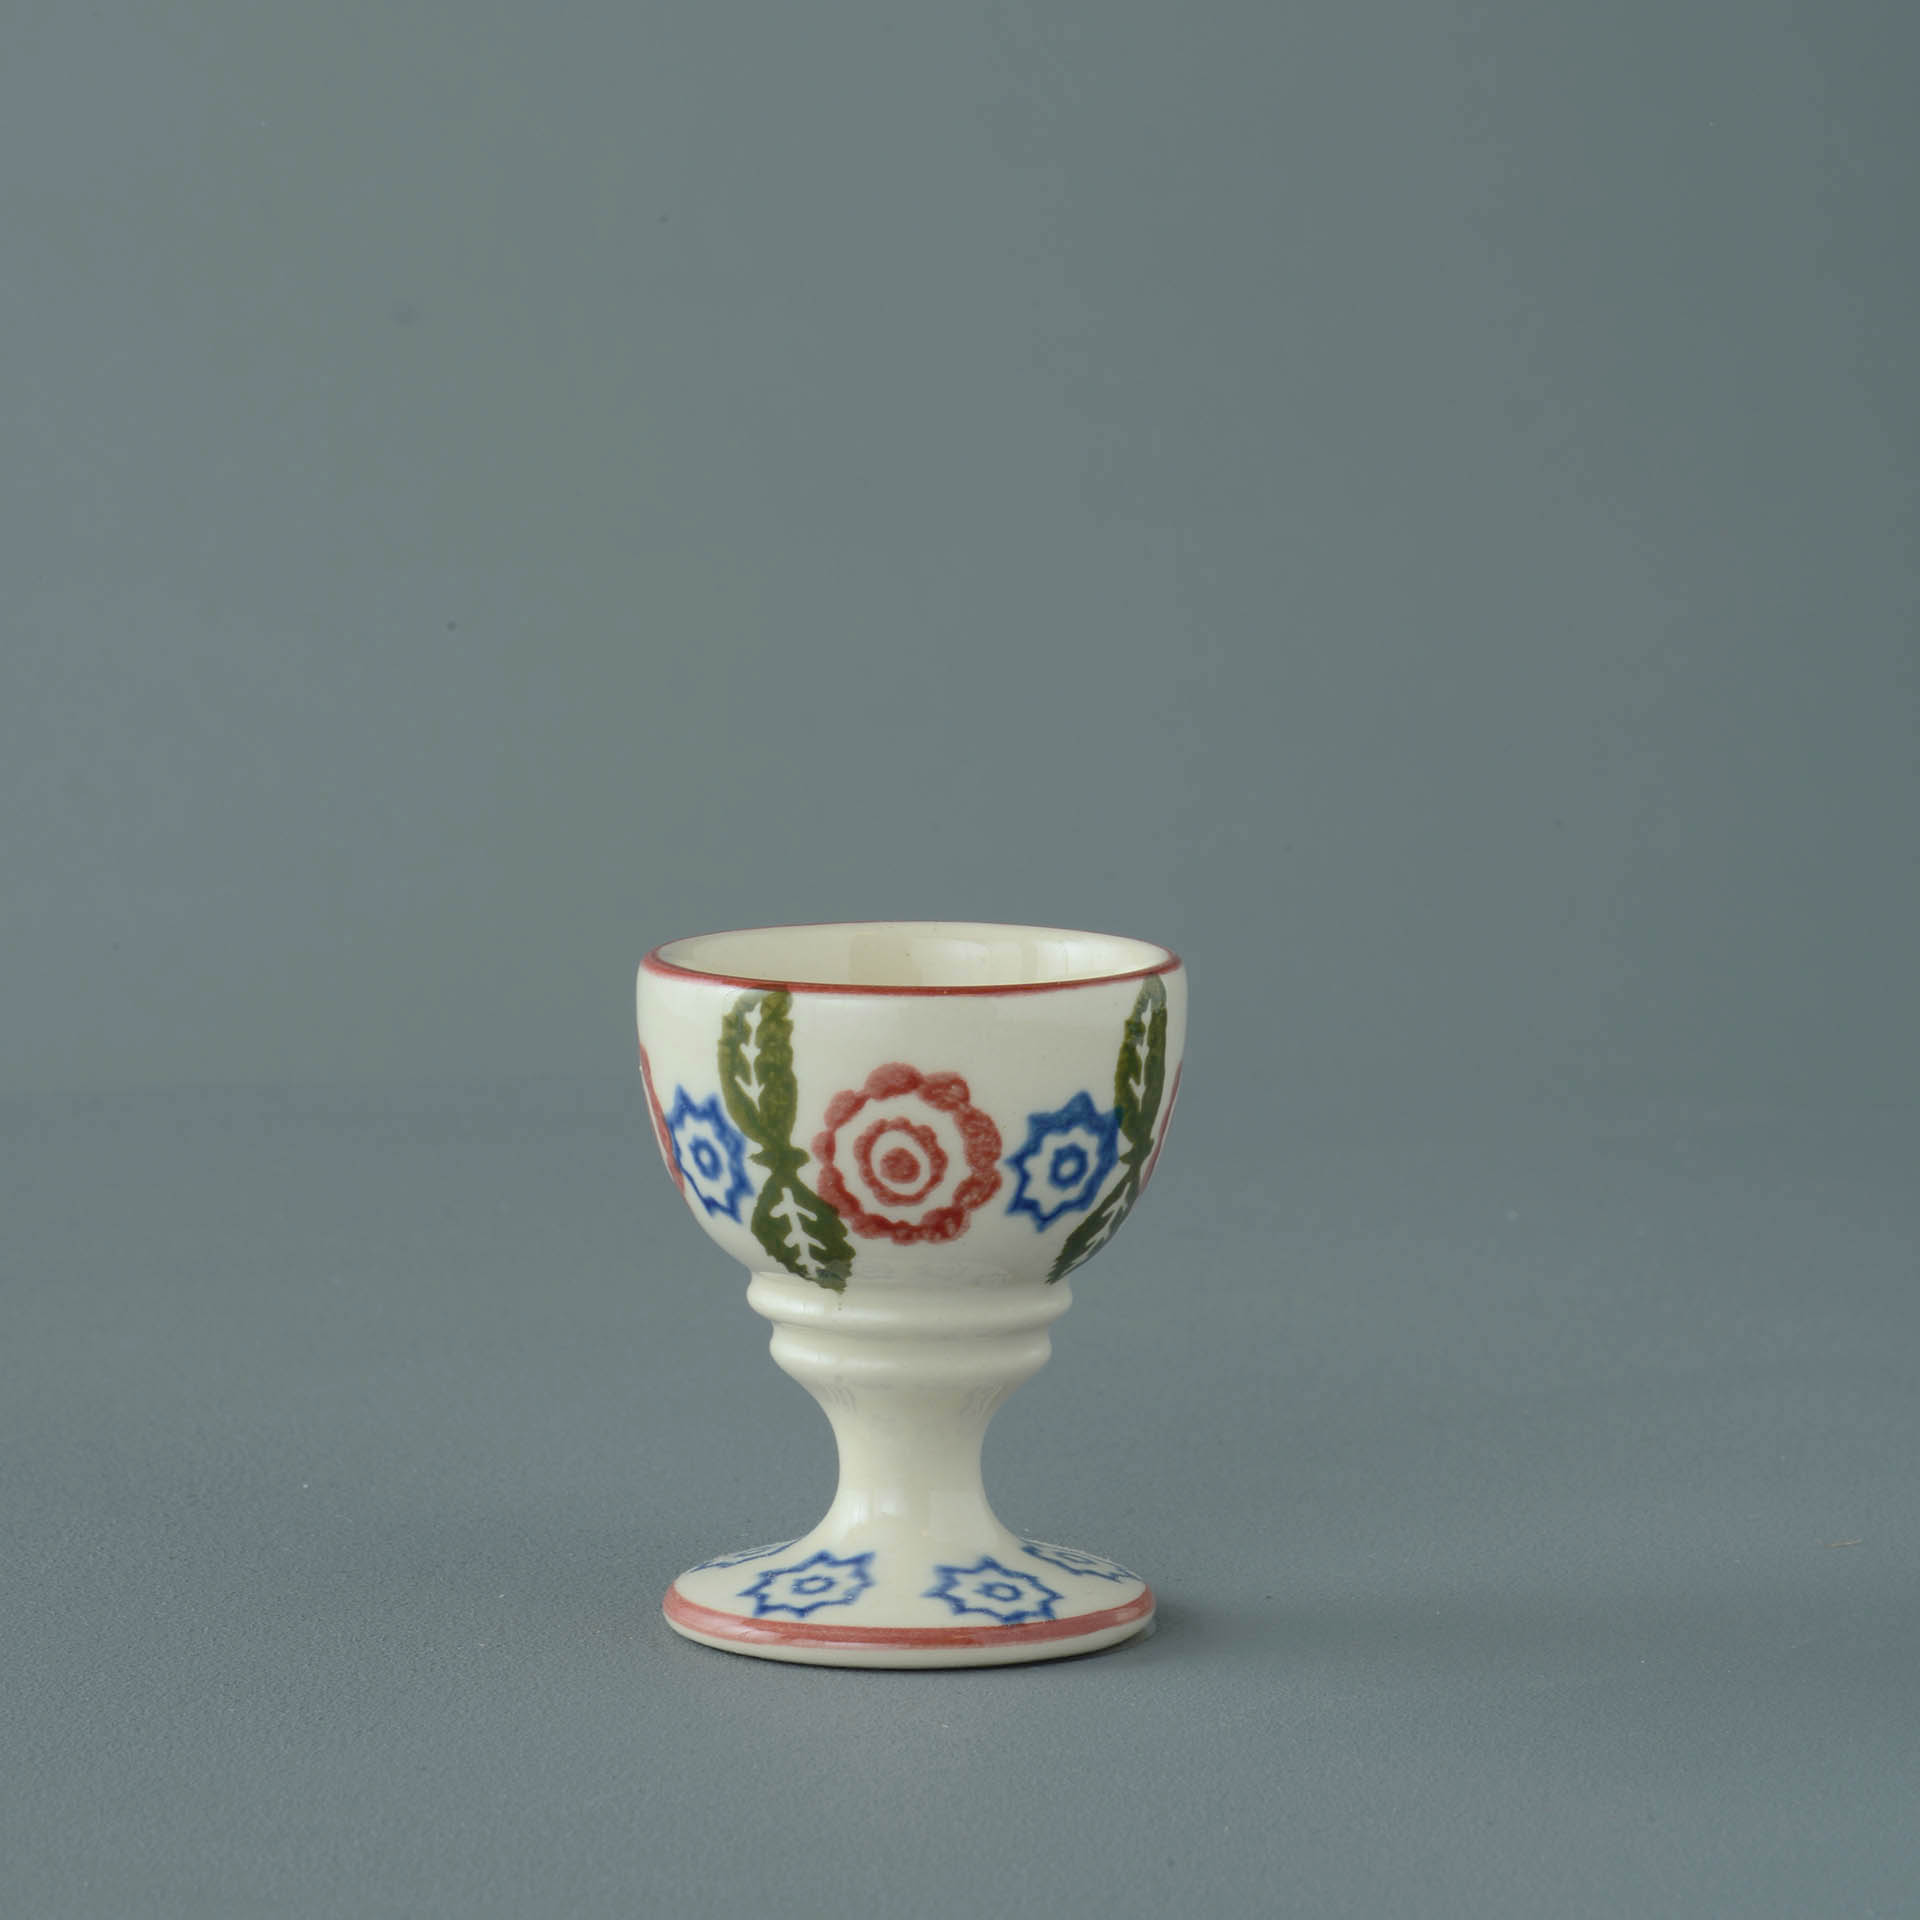 Victorian Floral Egg cup 6.3 x 5.2cm